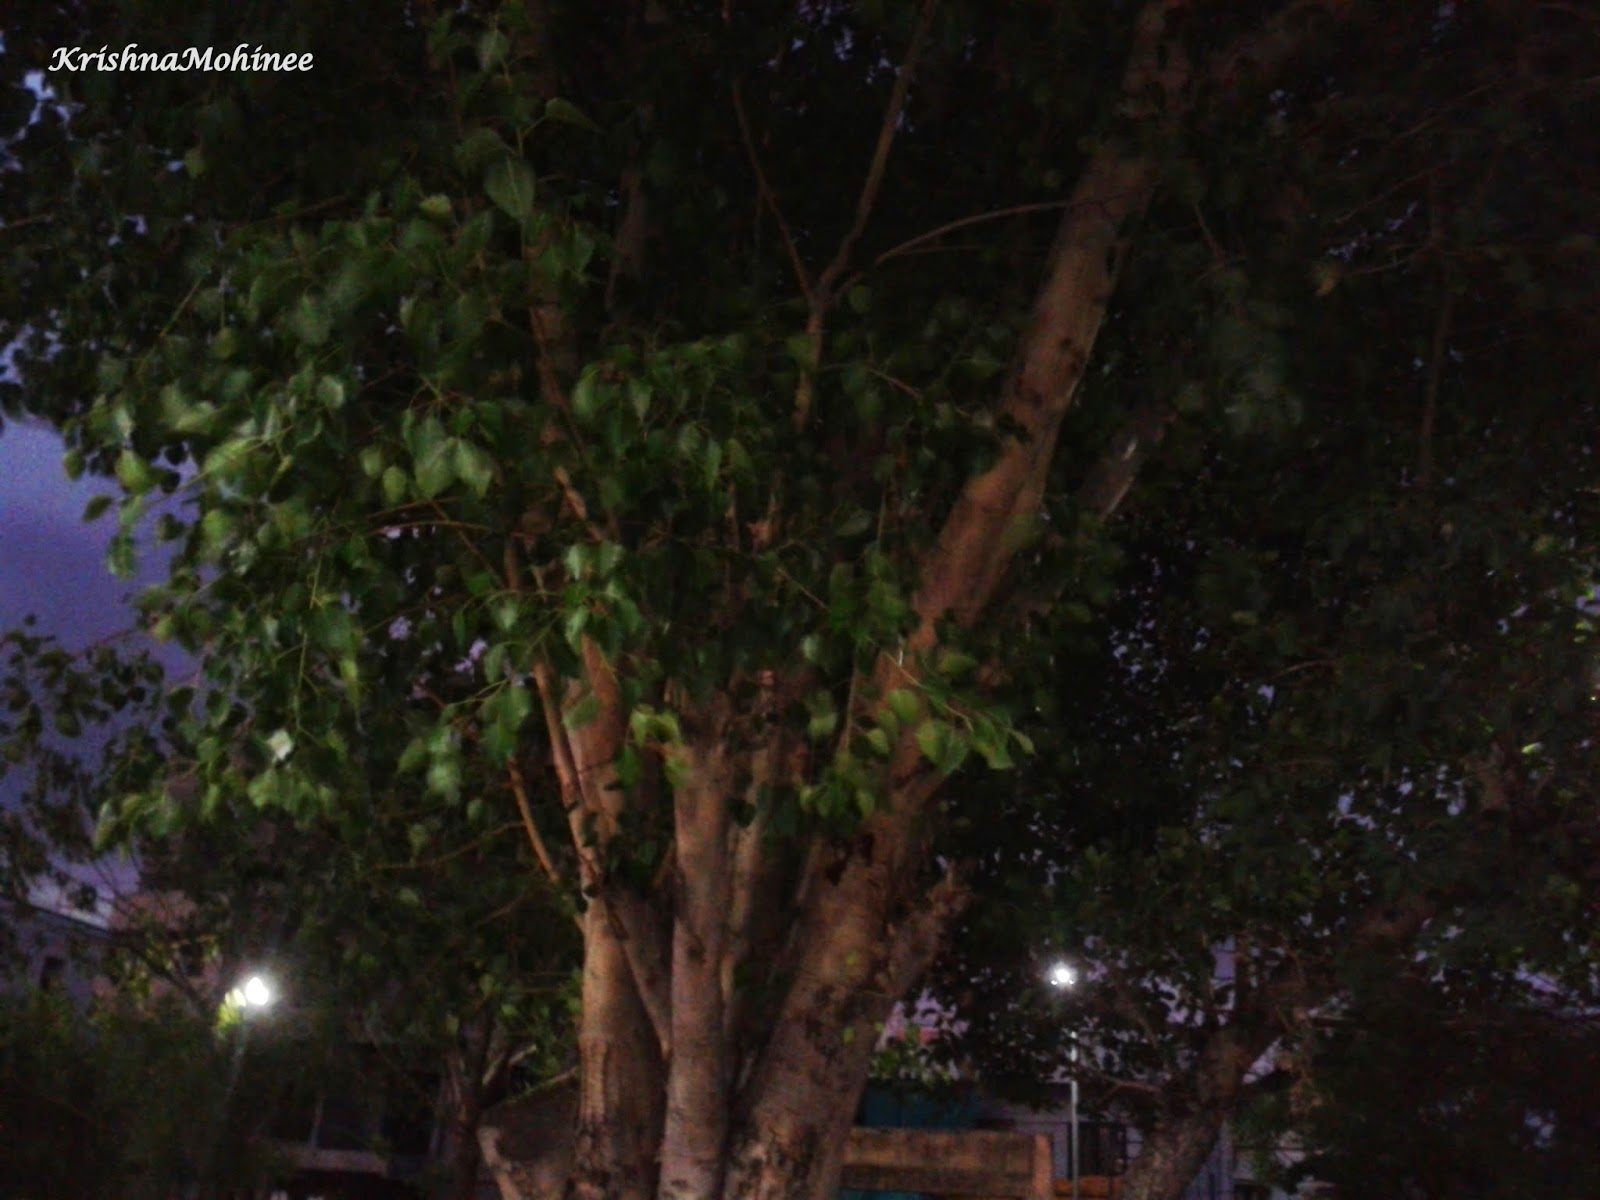 Image: Pipal tree in dark evening